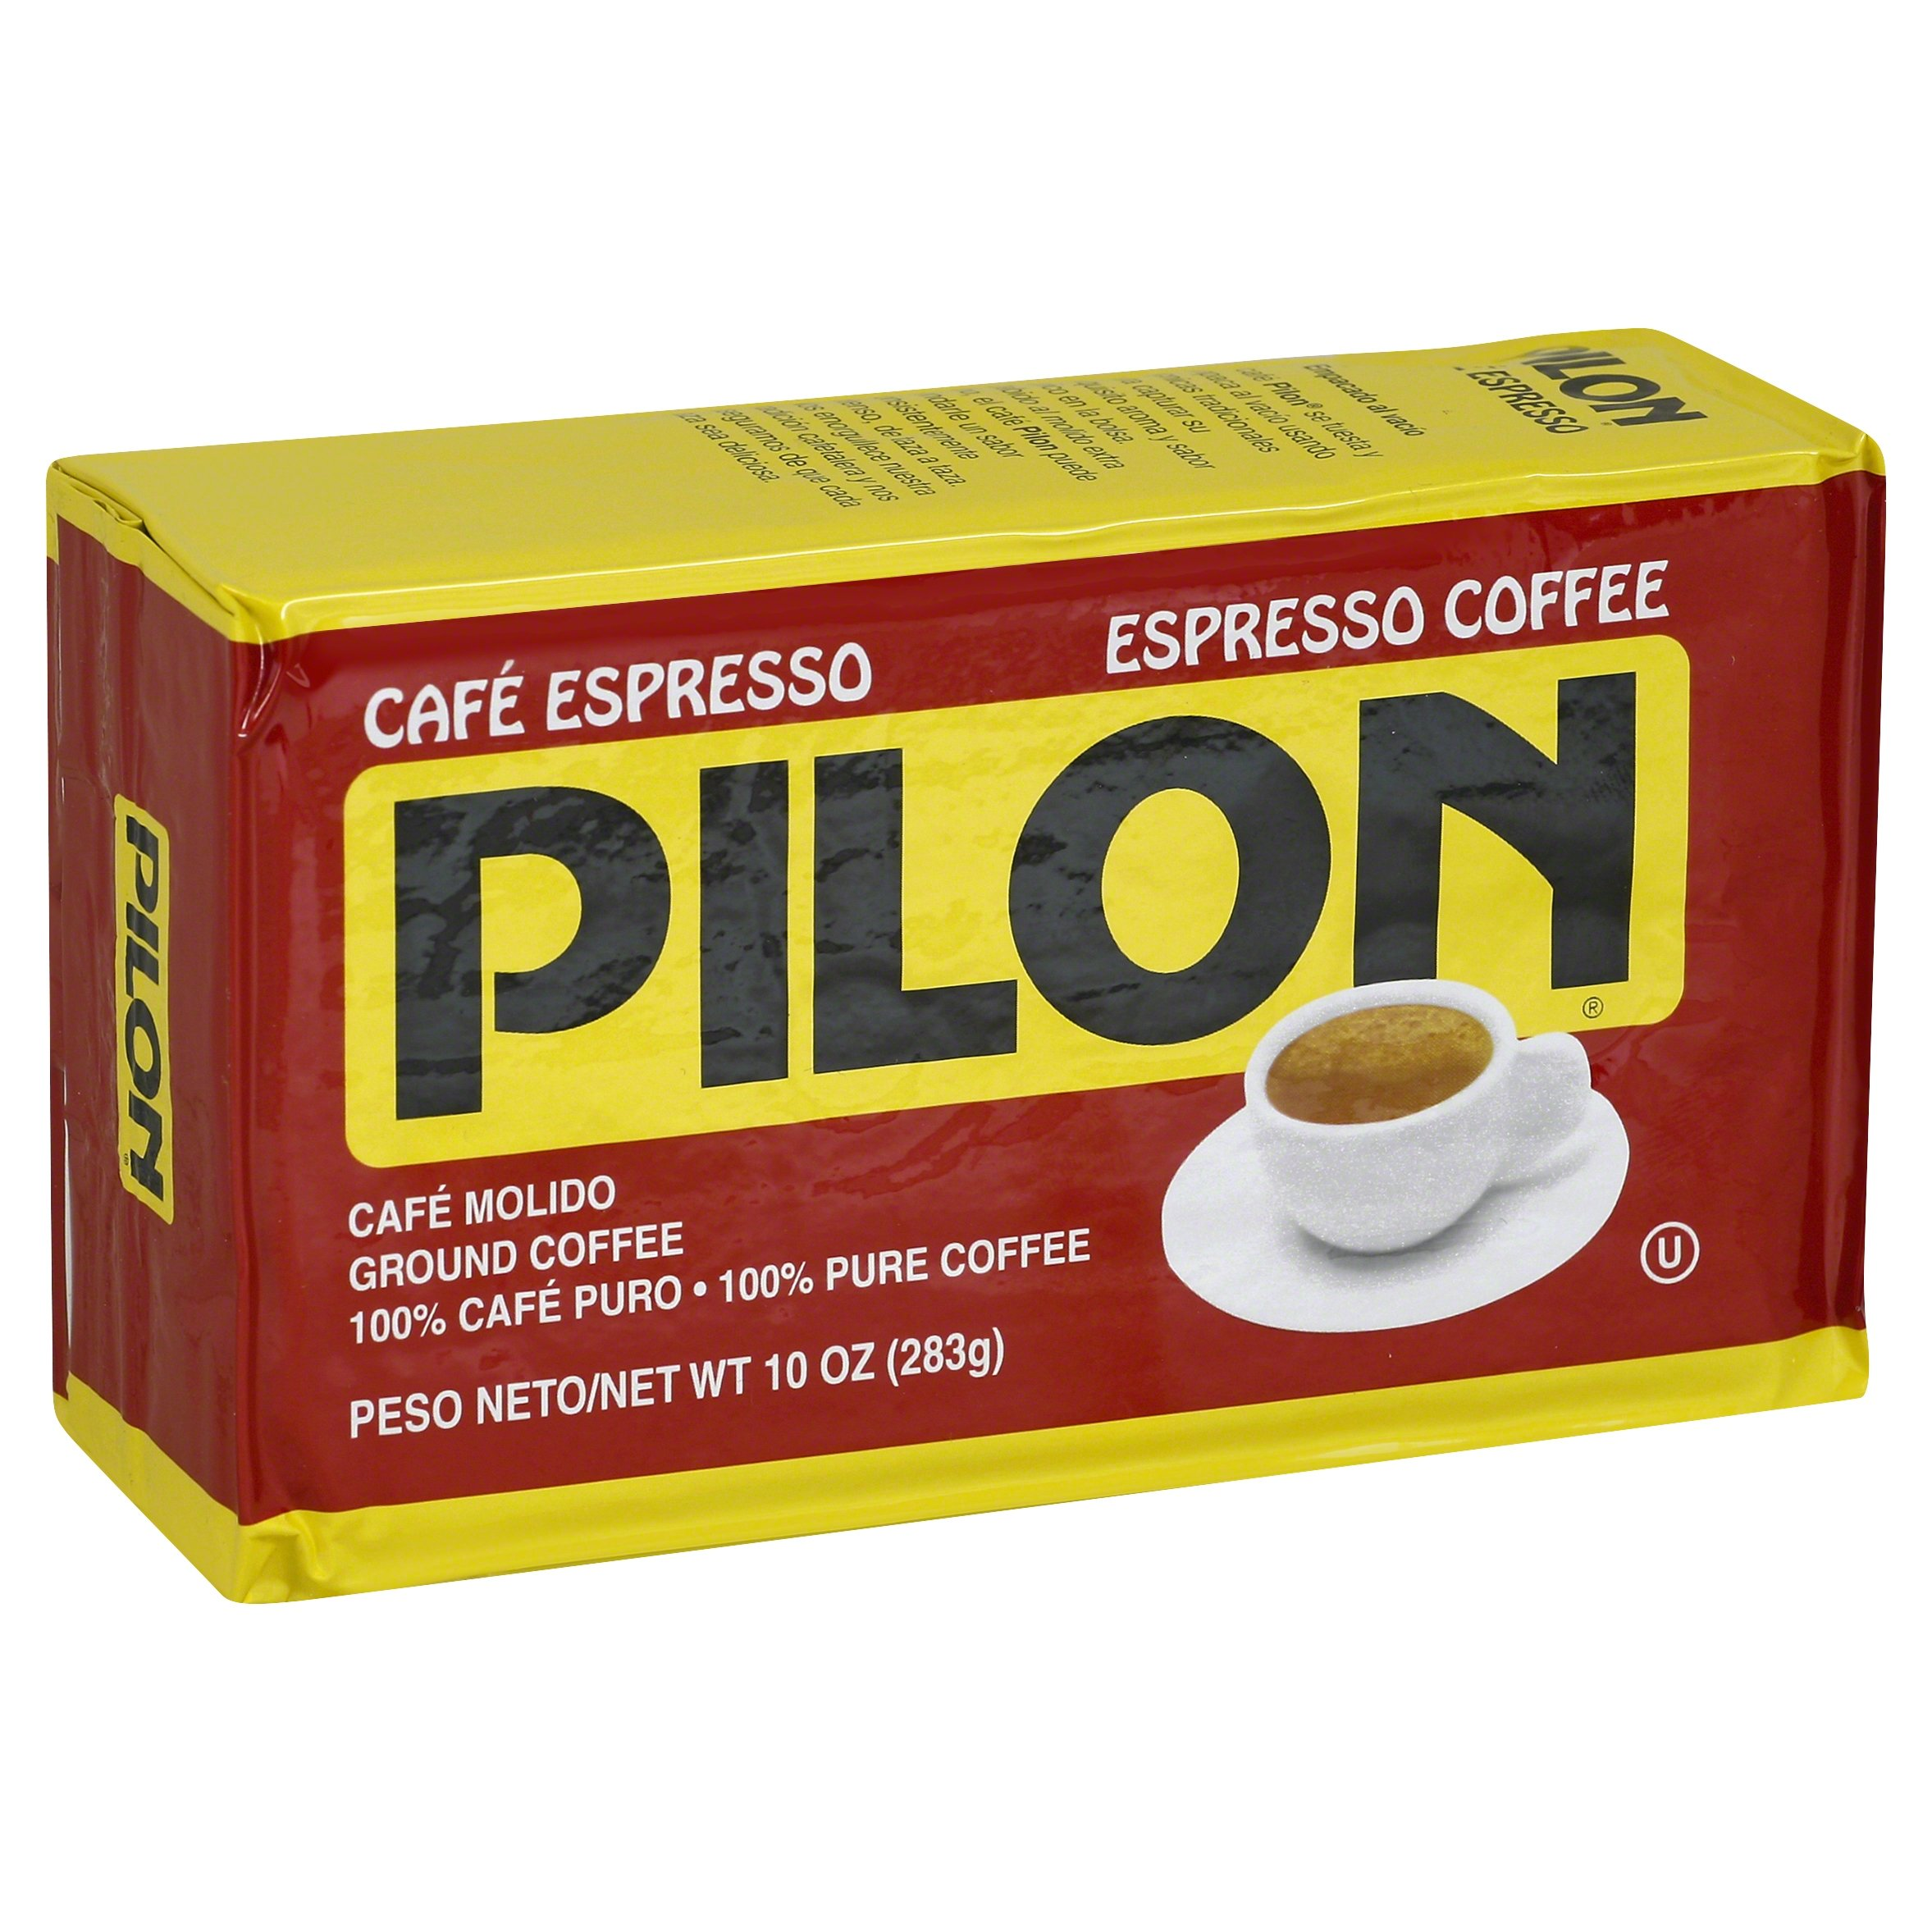 Pilon Espresso Coffee, 10 Ounce (Pack of 12)